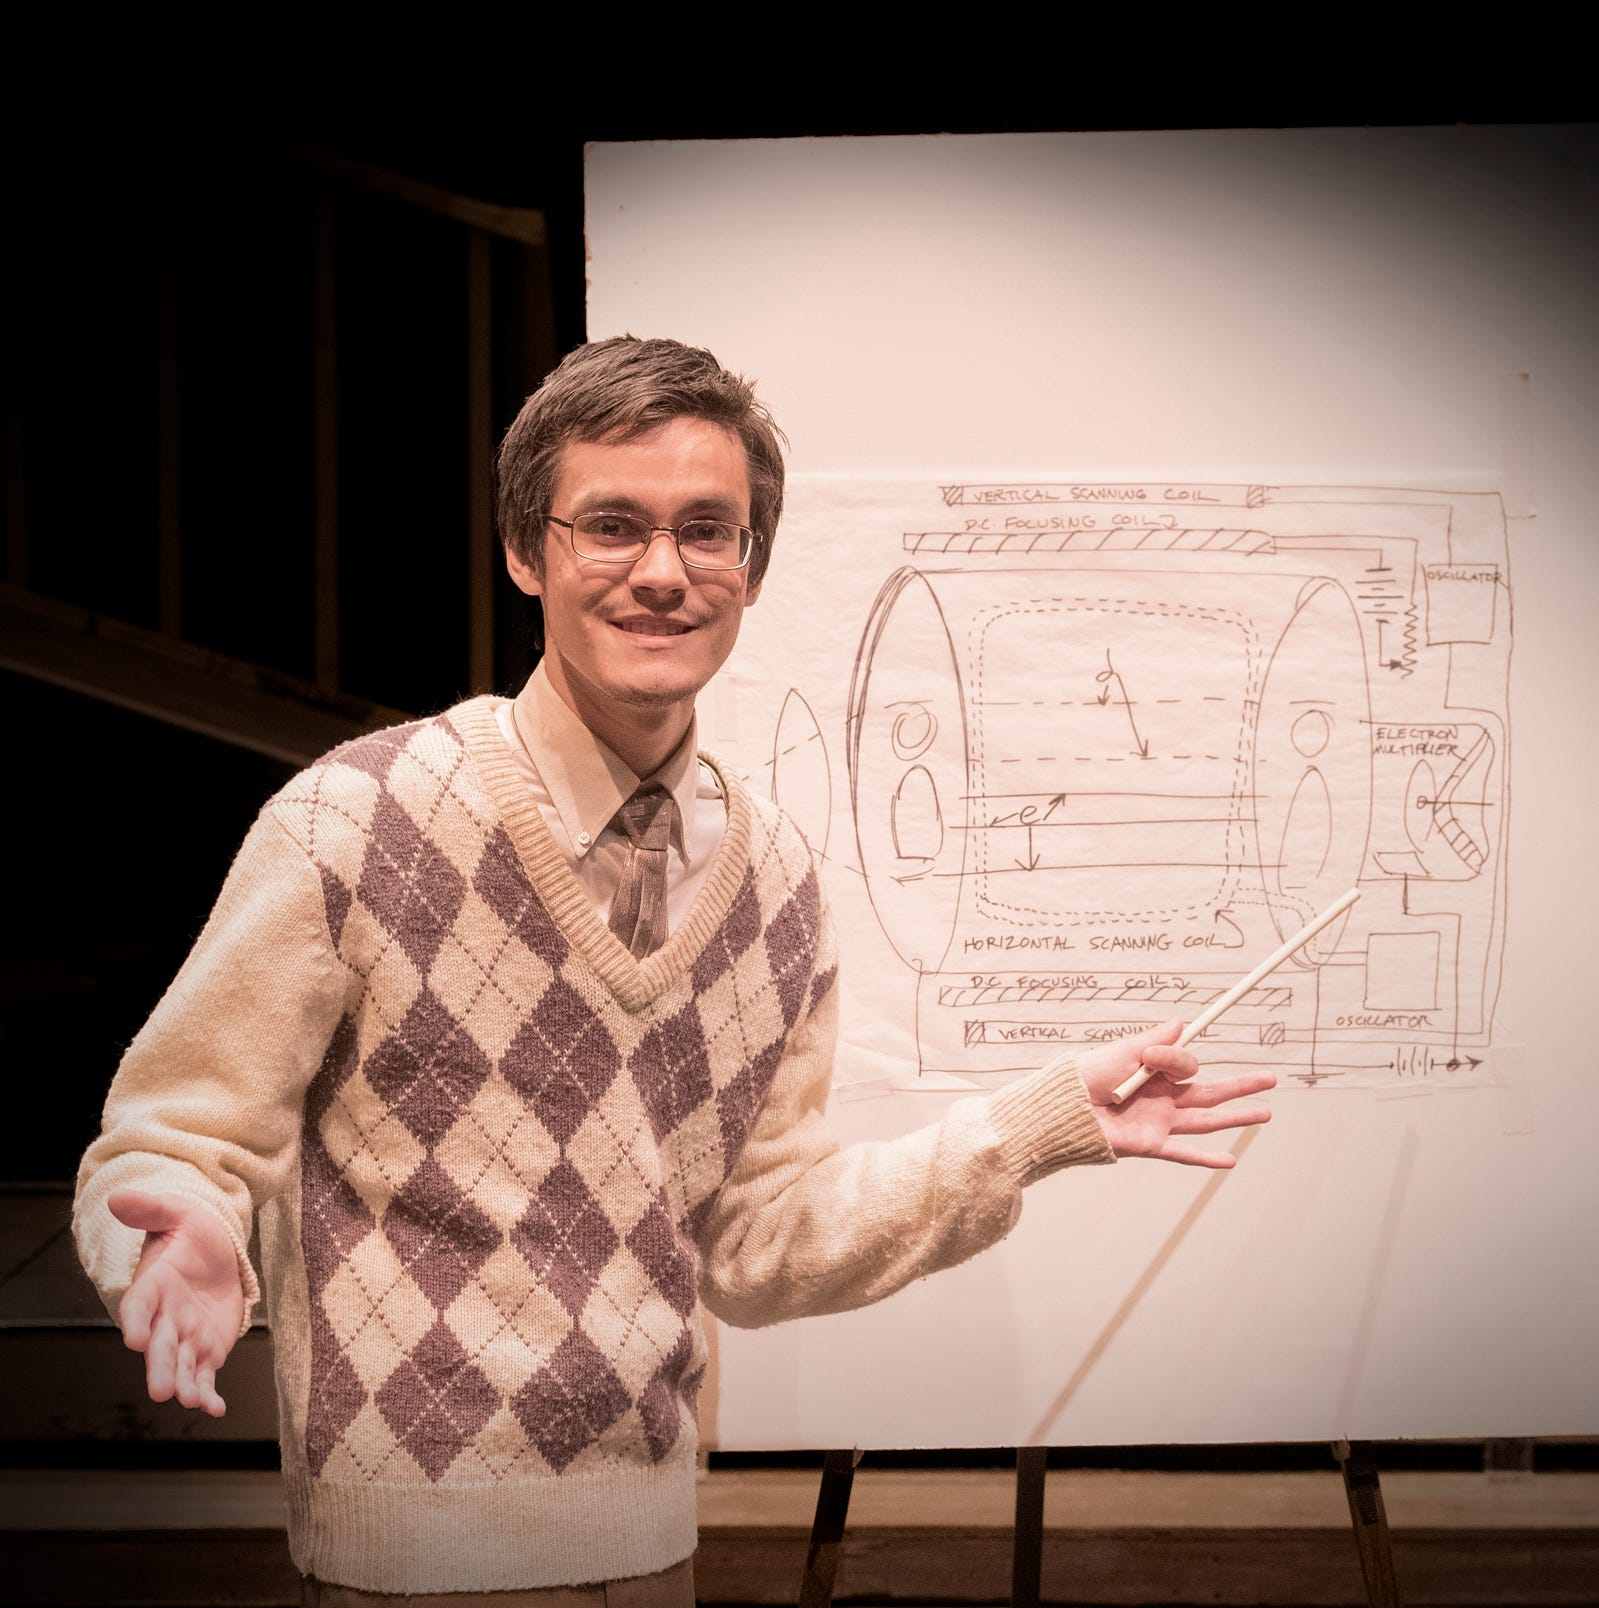 'West Wing' creator Aaron Sorkin's play lands on Shasta College stage